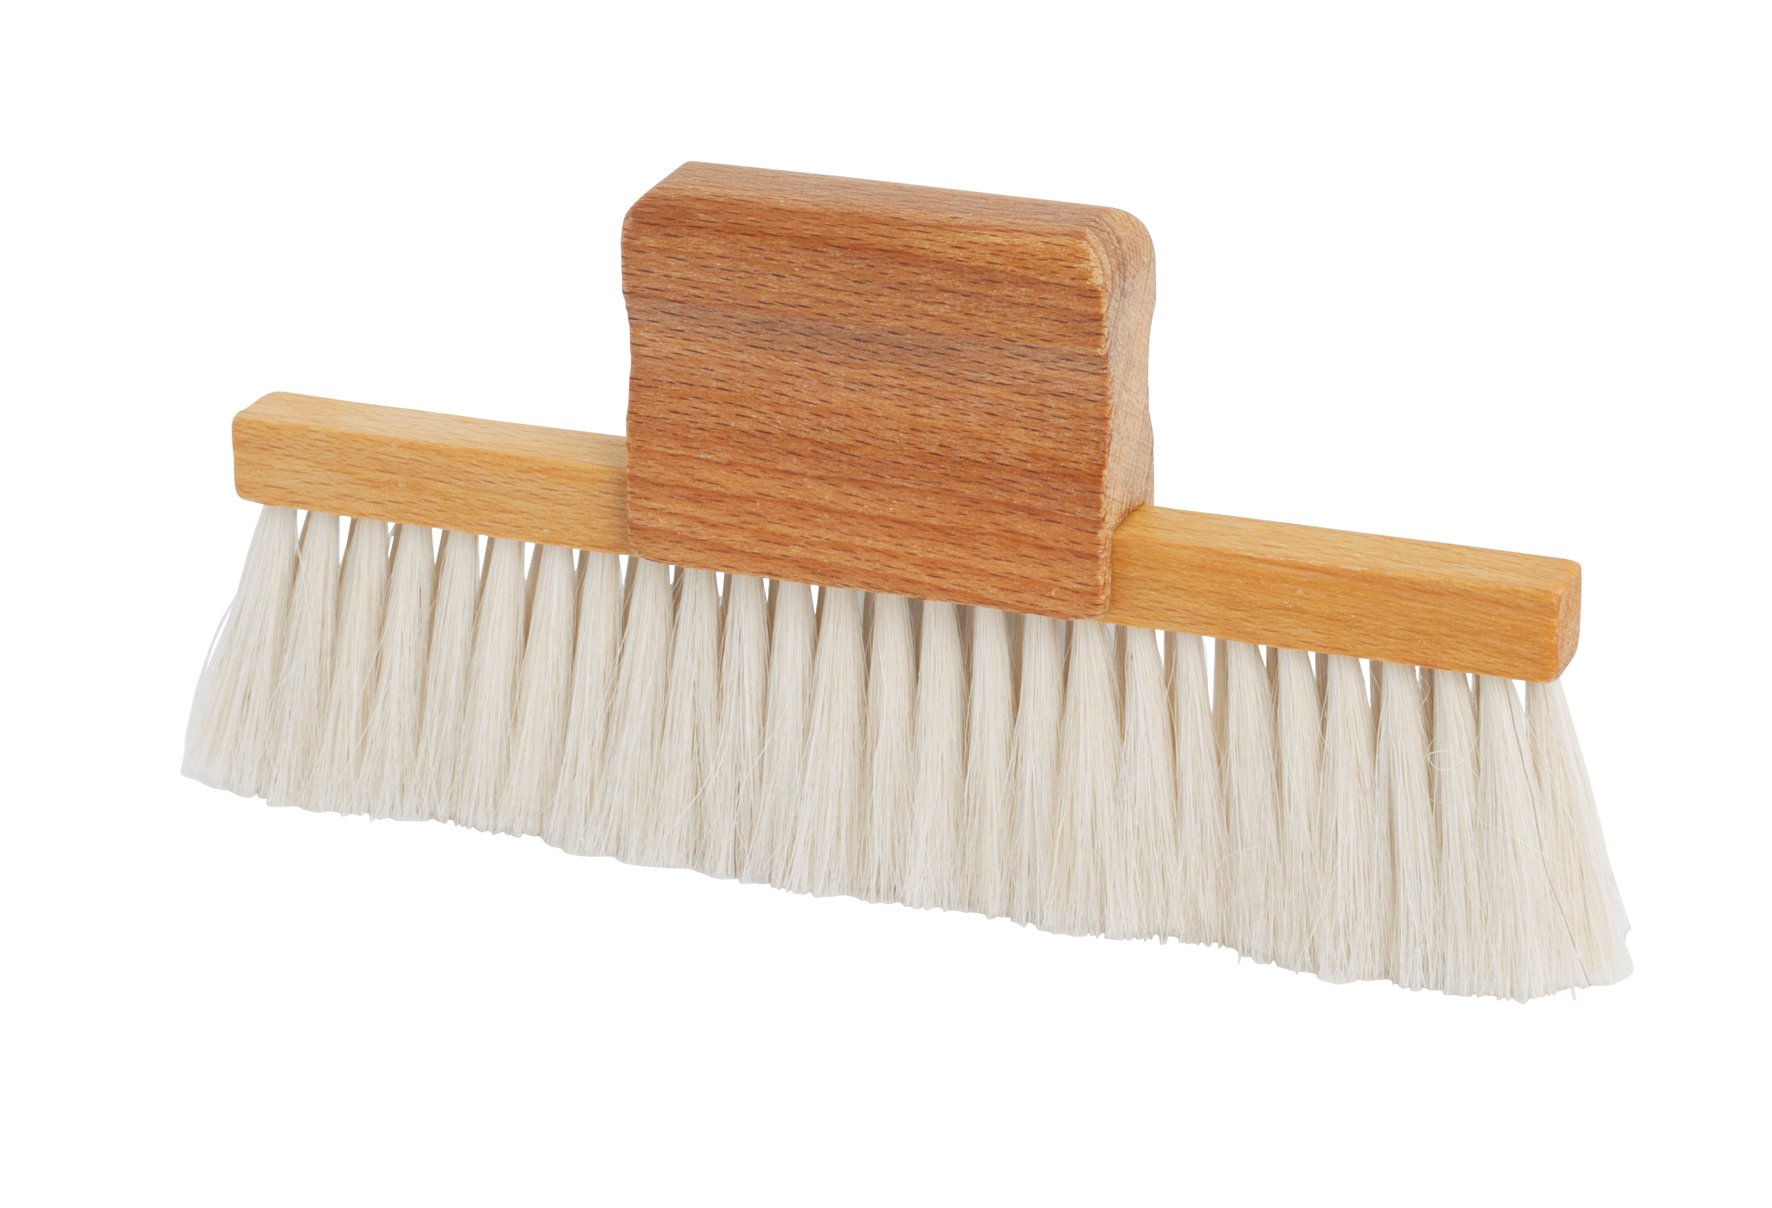 Redecker Goat Hair Table Brush with Oiled Beechwood Handle, 5-3/4 x 3-Inches